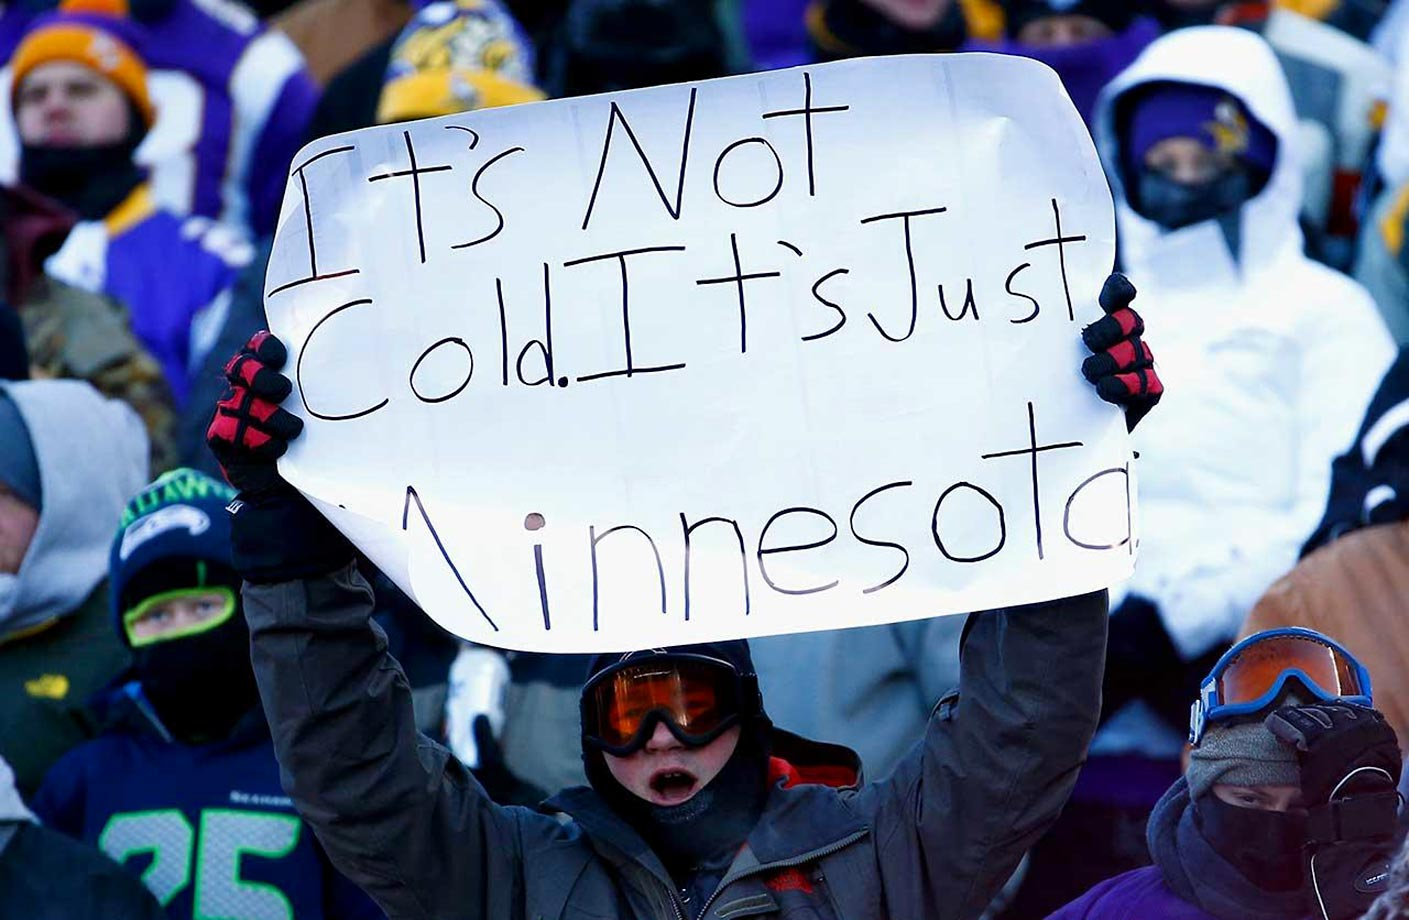 Fans at the Minnesota Vikings-Seattle Seahawks wild-card playoff game on Jan. 10, when temperatures were at minus 6 degrees at kickoff, making it one of the coldest games in NFL history.